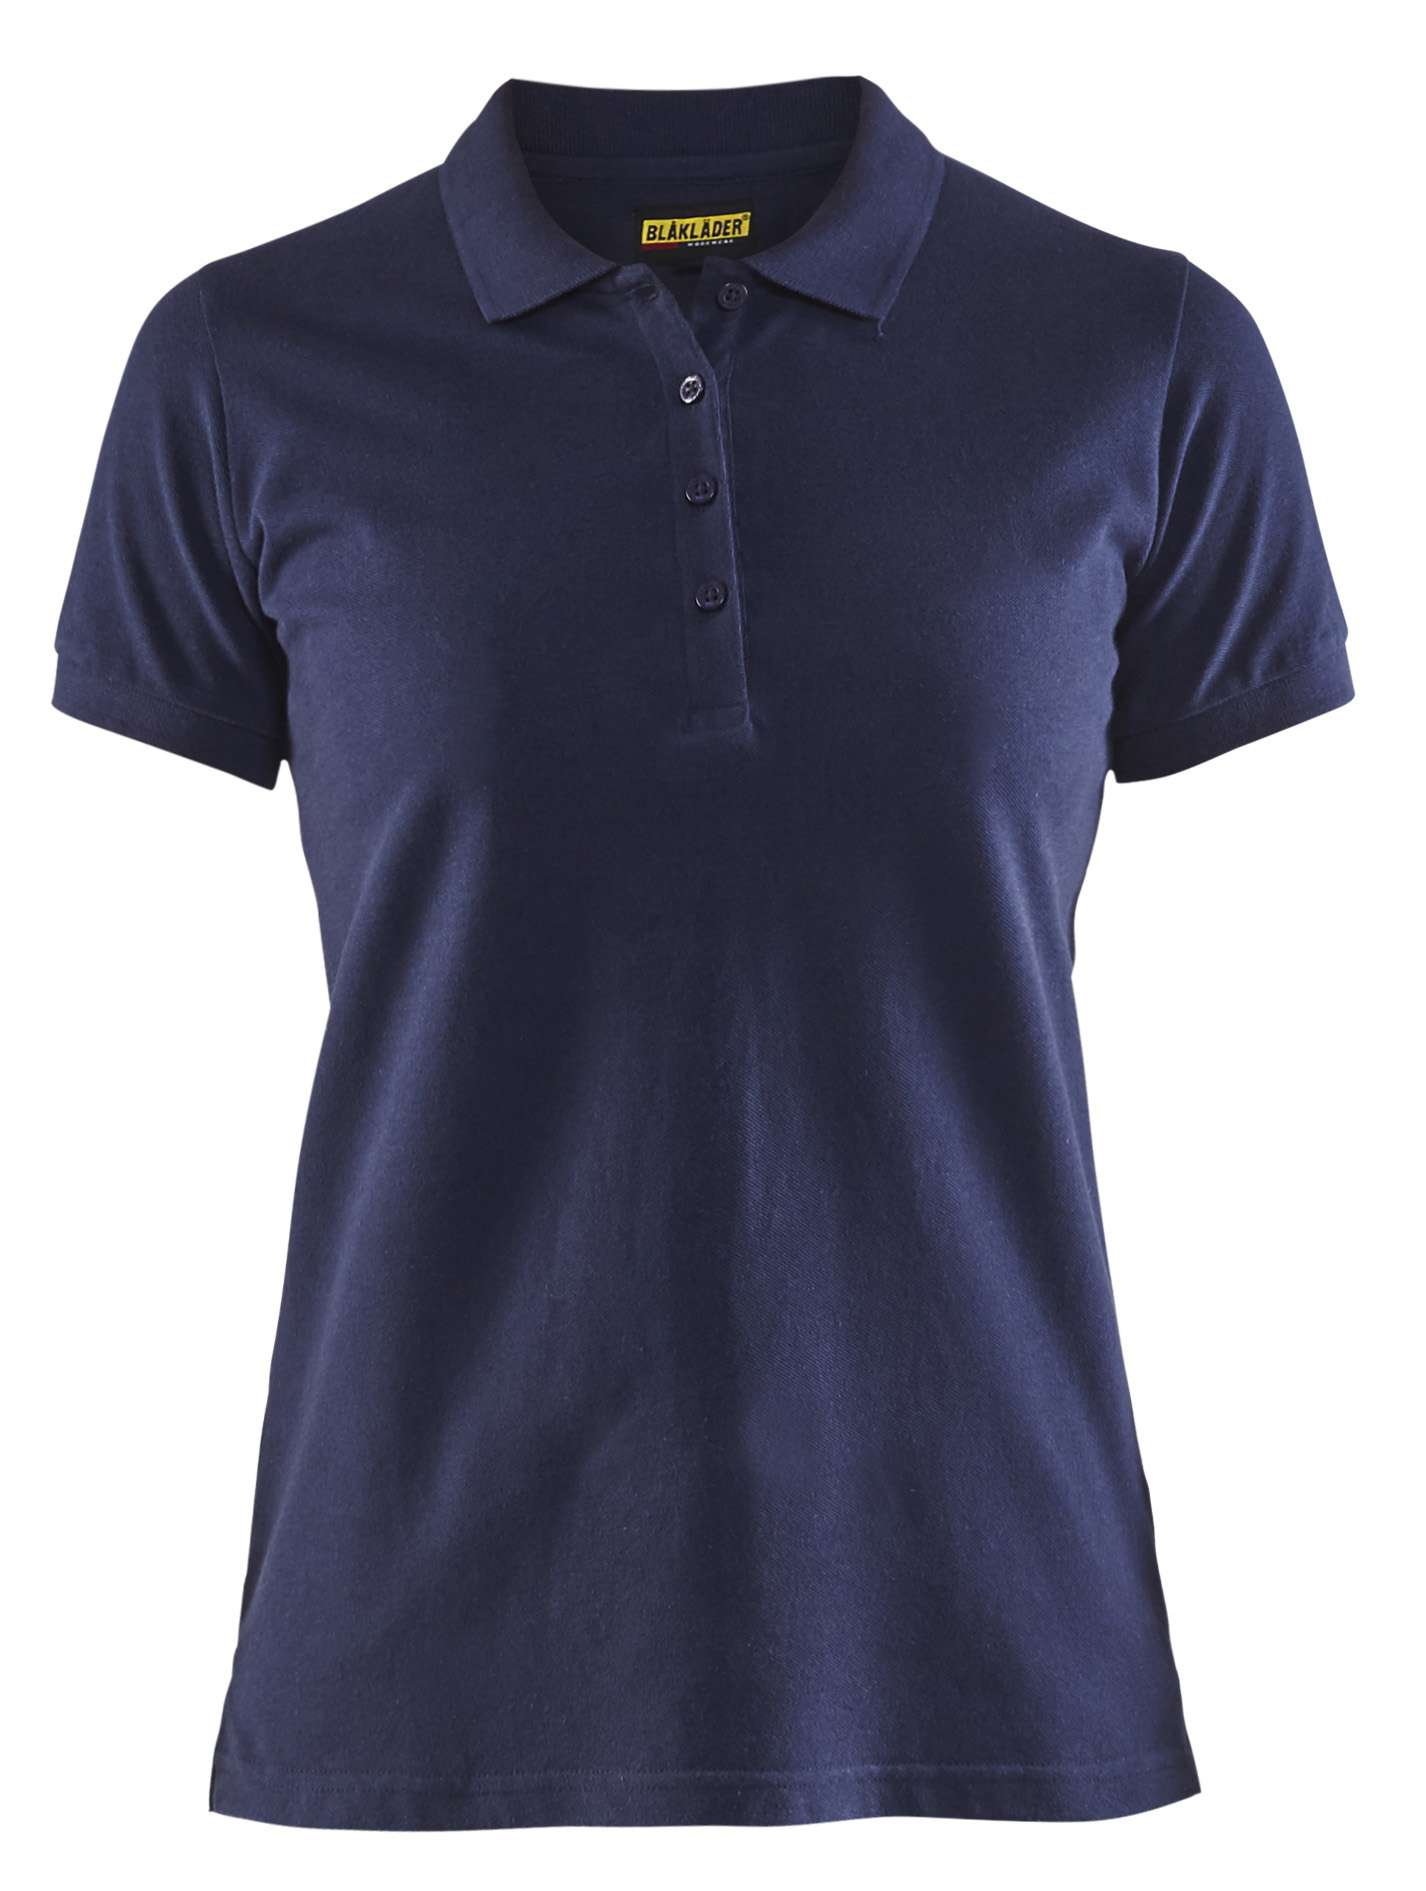 Blaklader Dames polo shirts 33071035 marineblauw(8800)